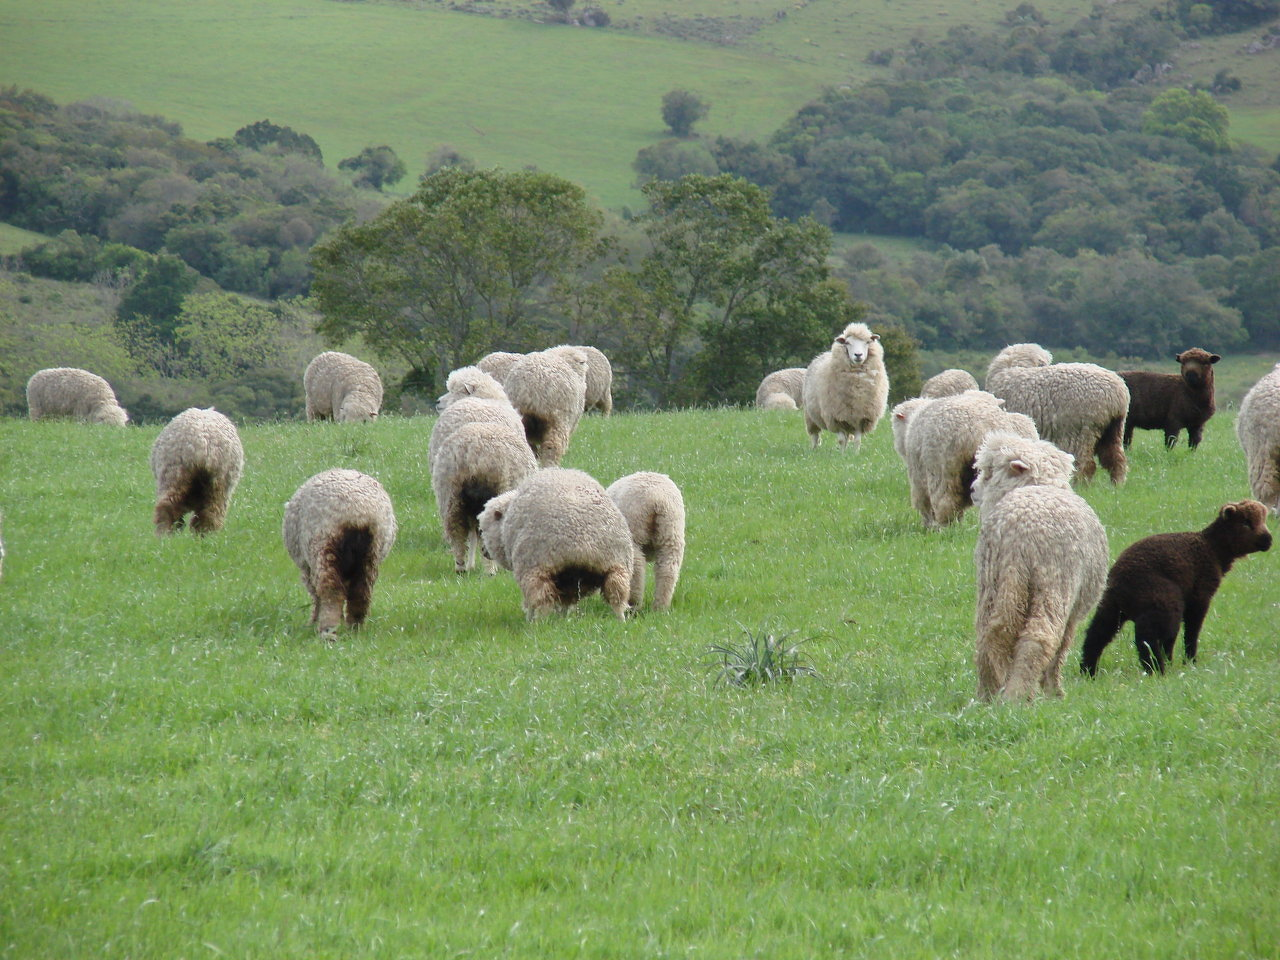 Grazing Sheep